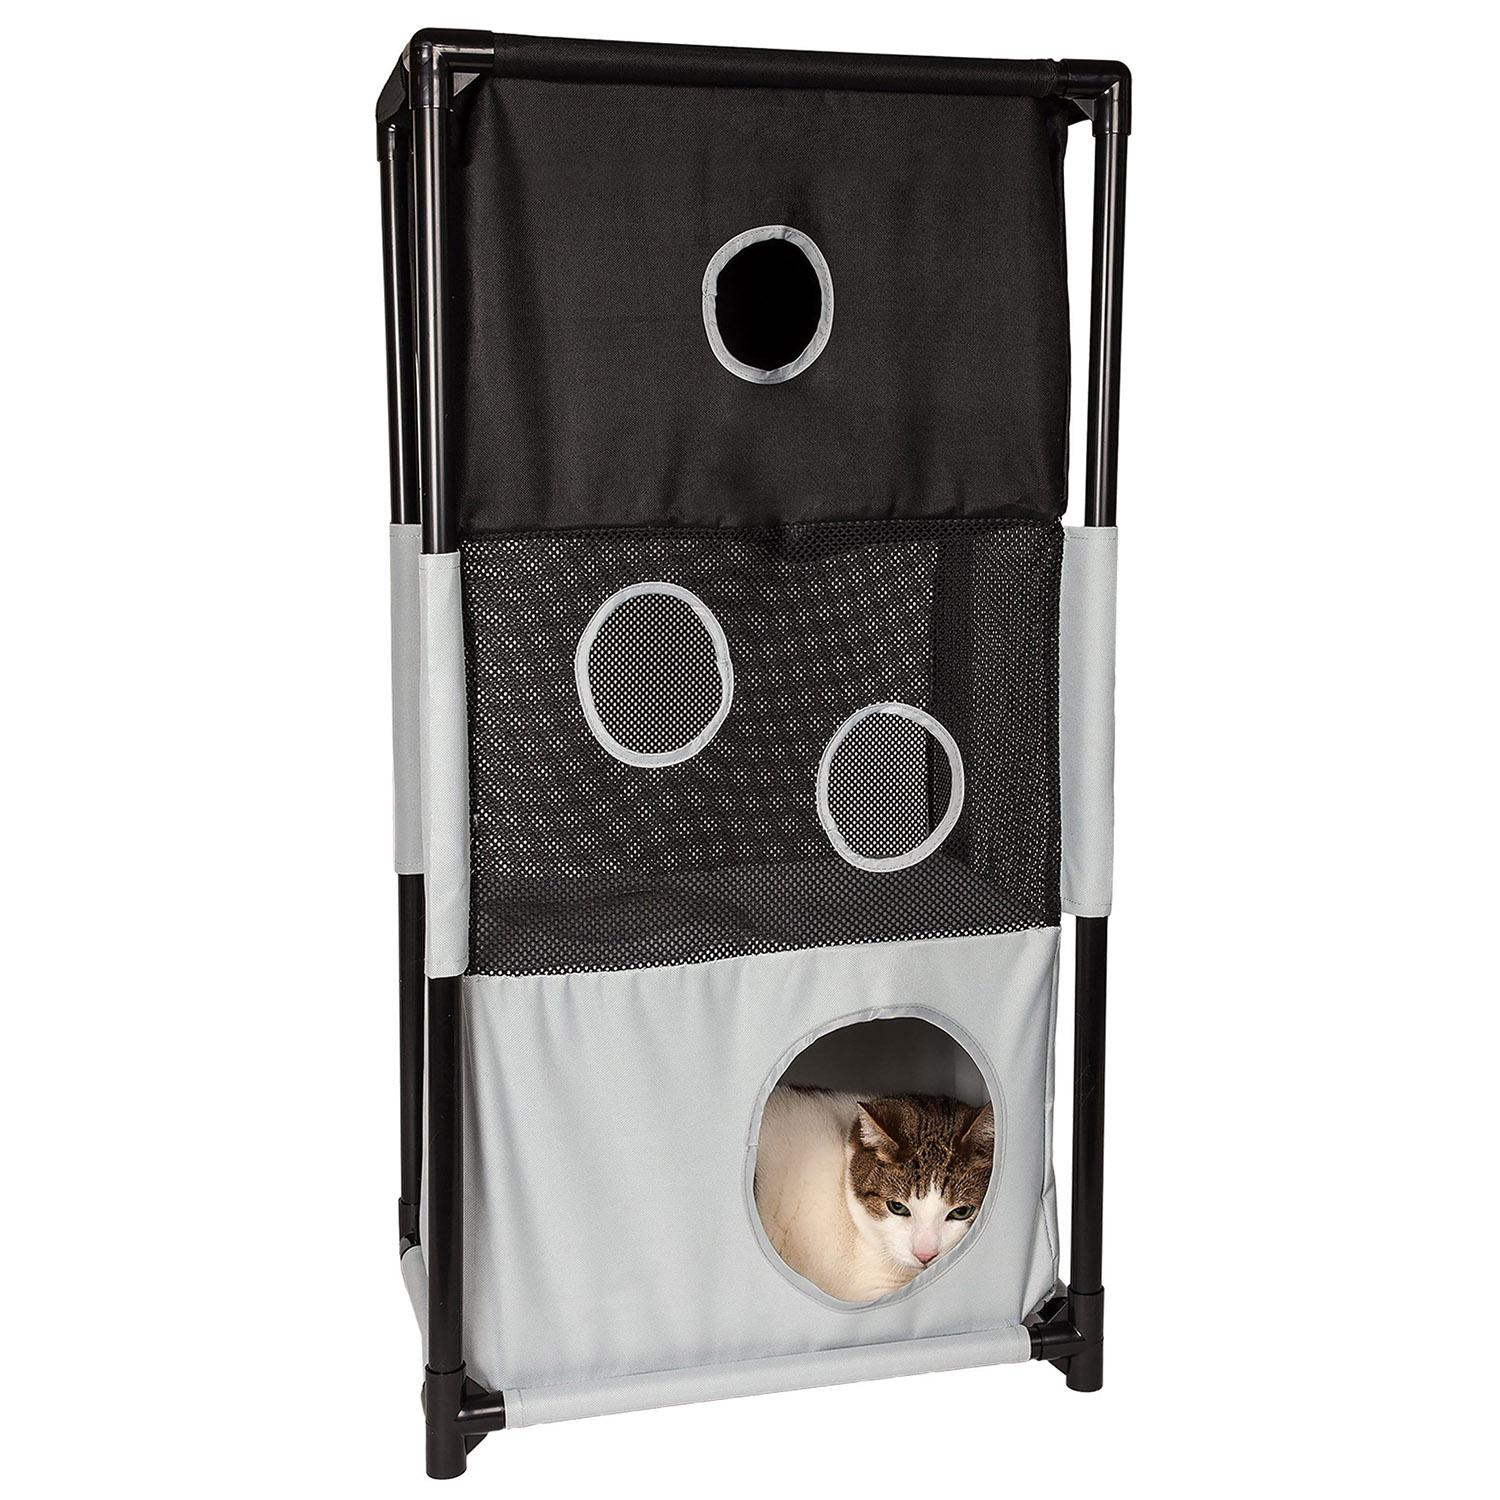 Pet Life 'Kitty-Square' Collapsible Cat Playhouse Lounger - Black and White